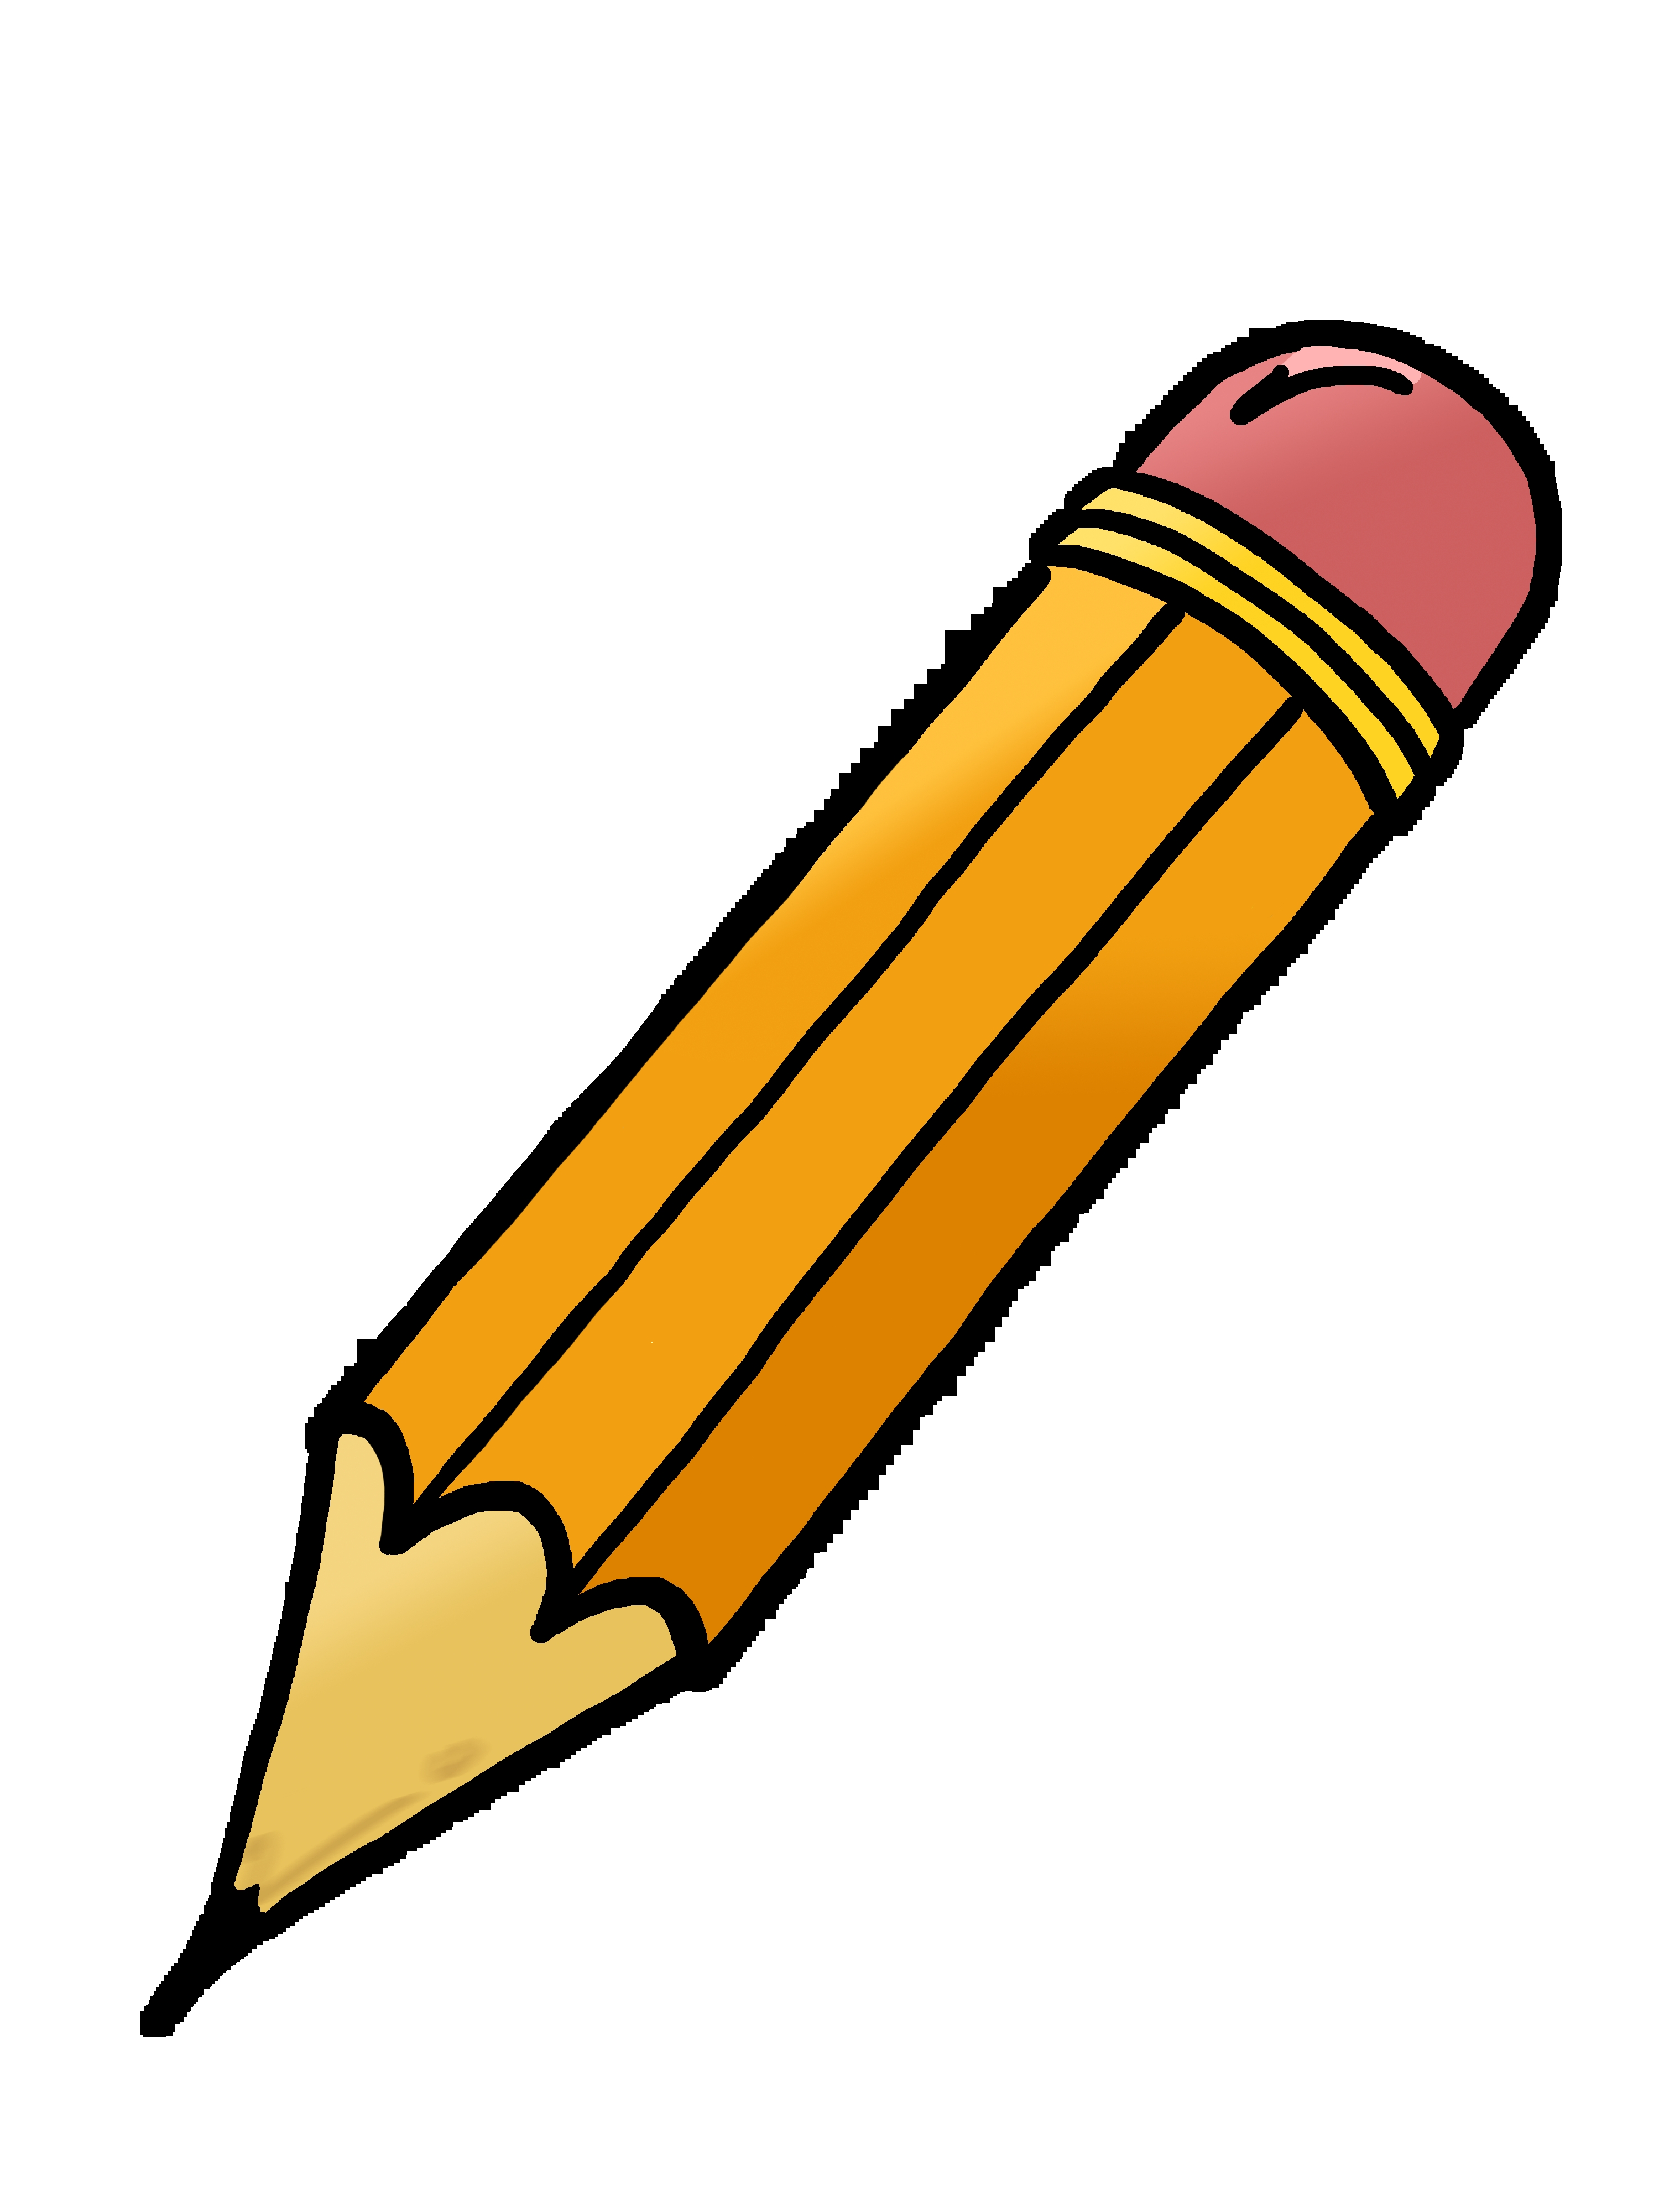 Free Erasers Cliparts, Download Free Clip Art, Free Clip Art.